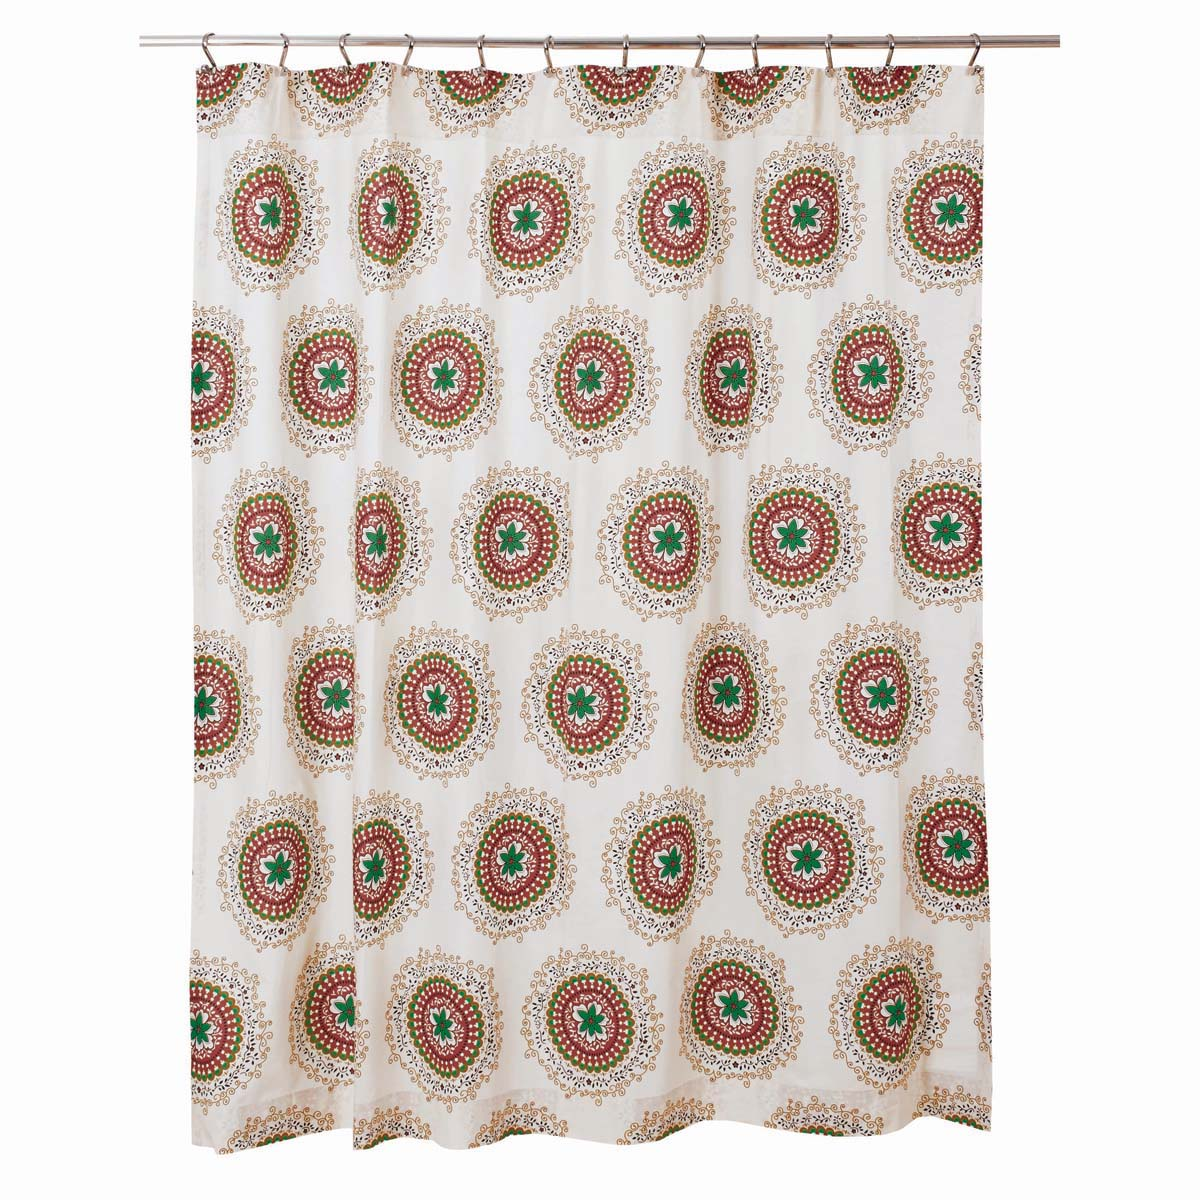 Bermuda Shower Curtain 72x72 - Woodrol